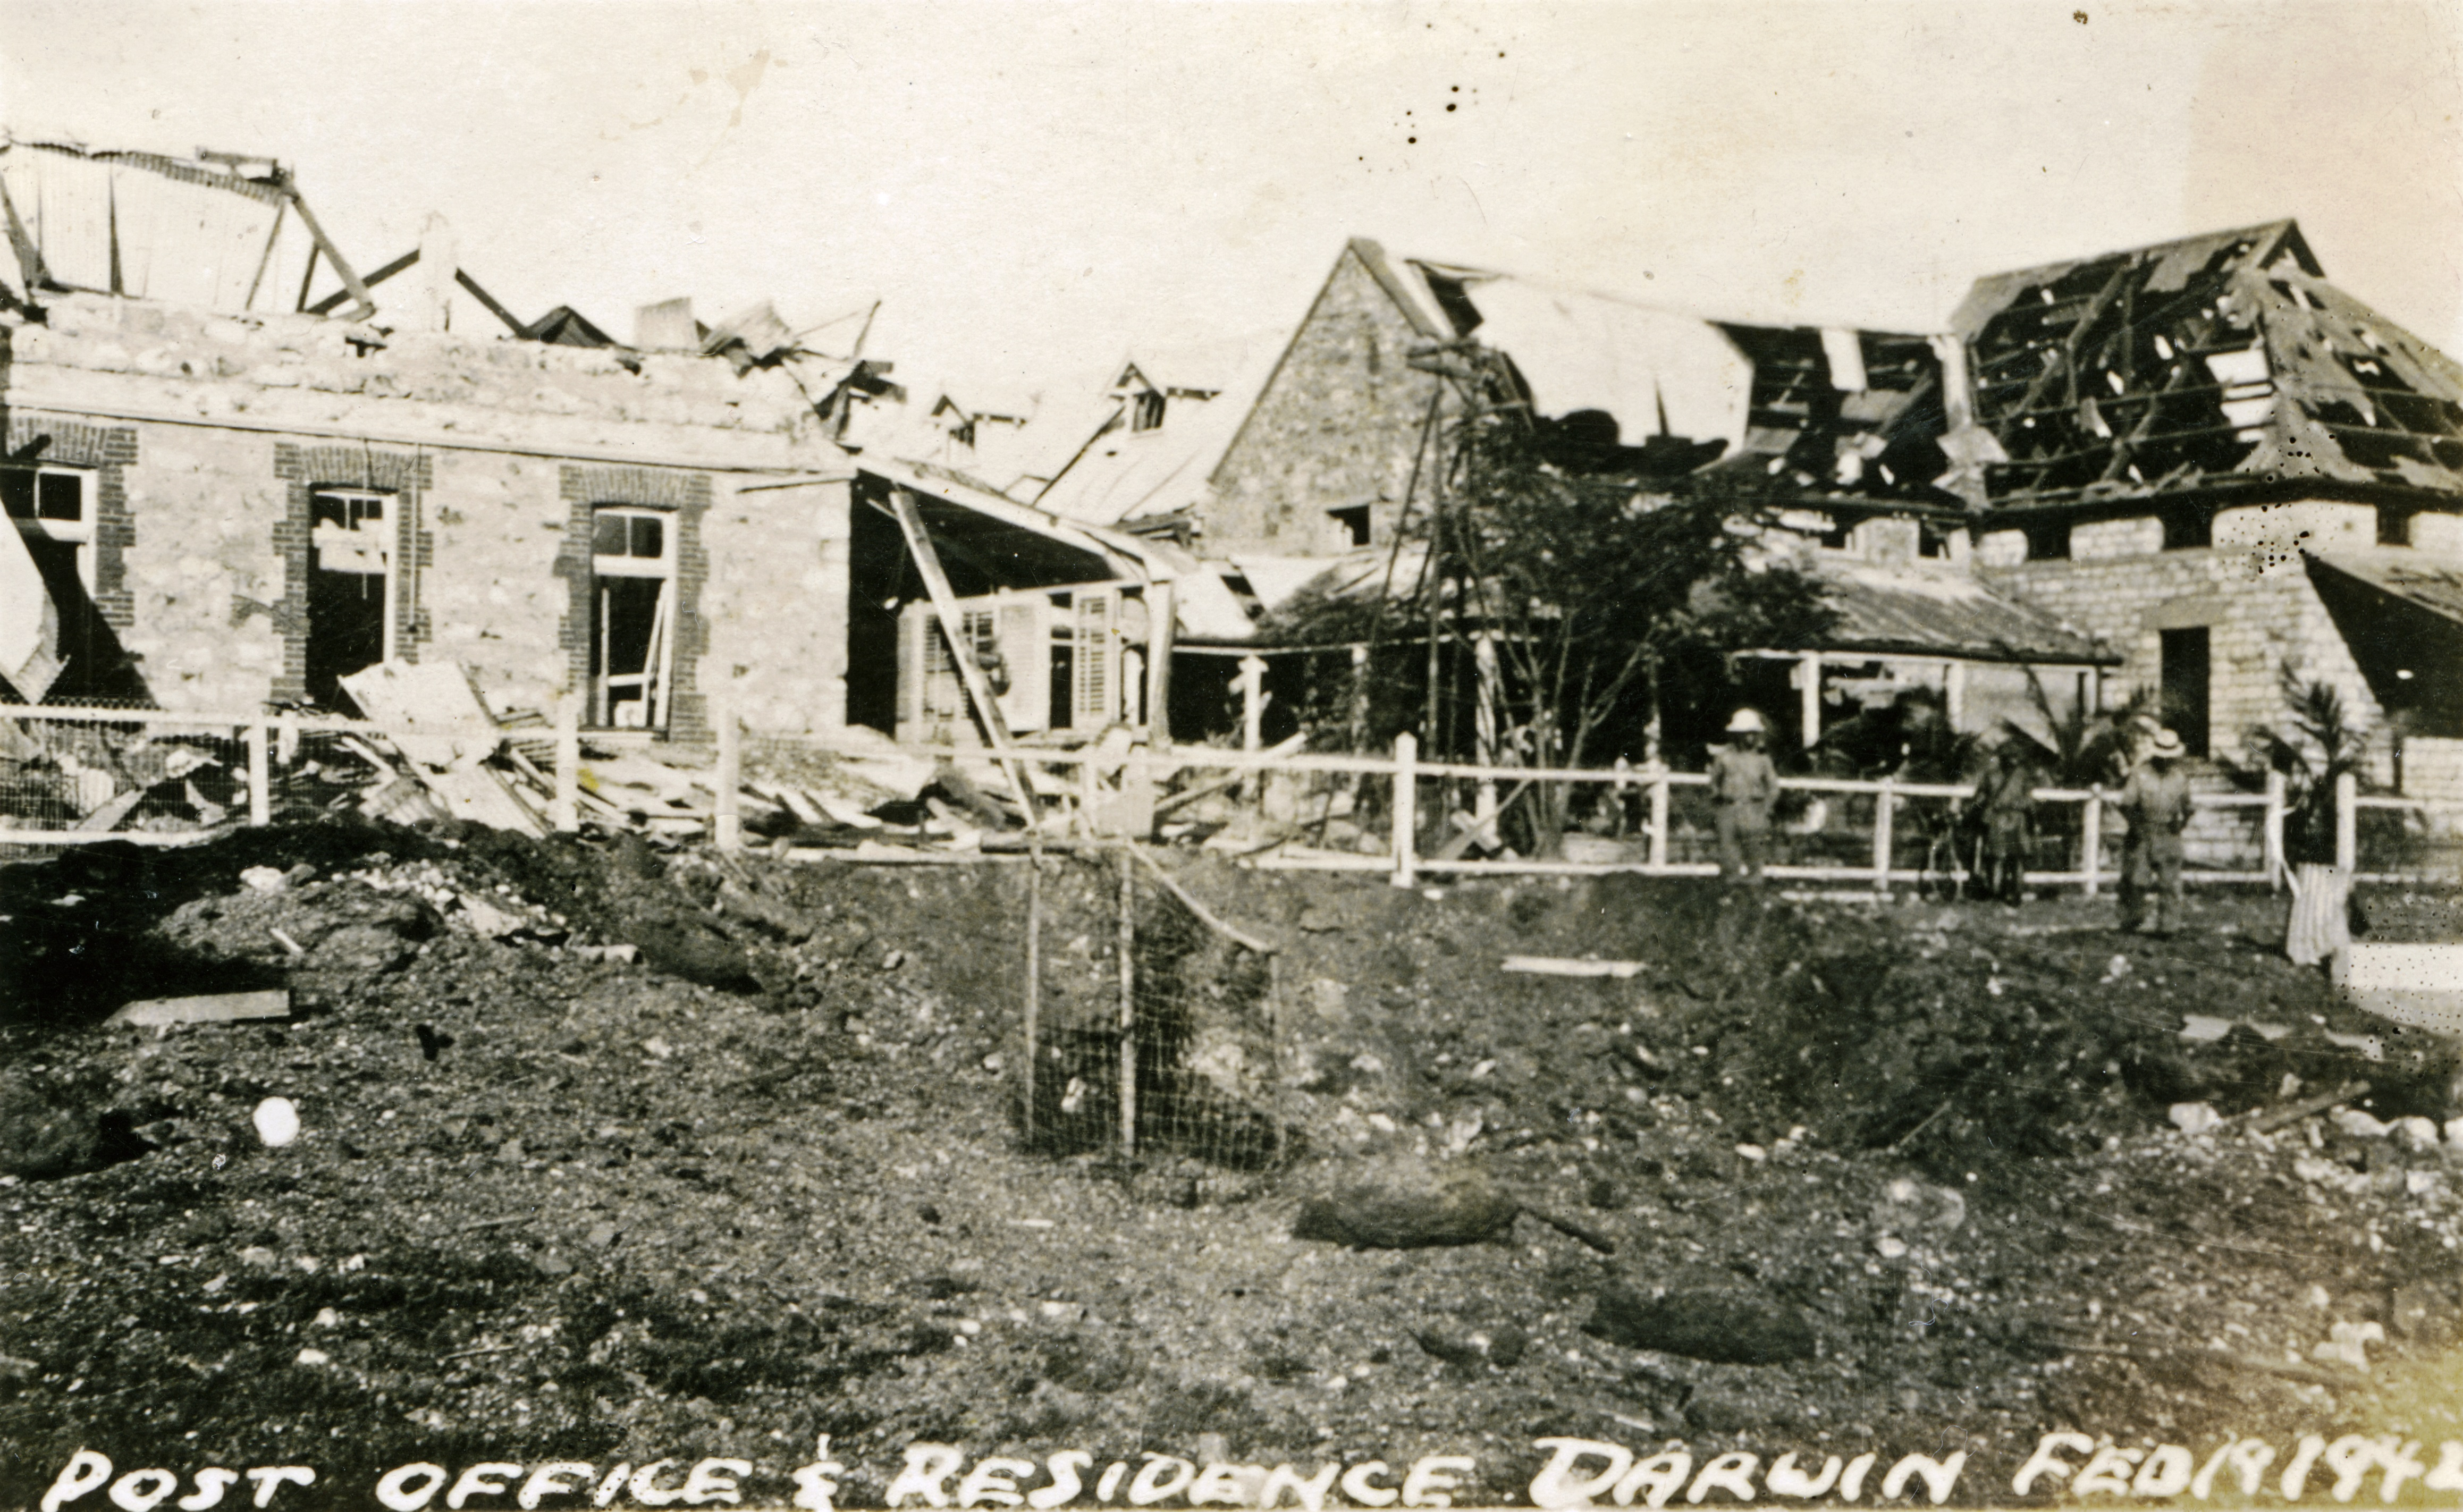 Darwin Post Office and Residence after bombing showing damaged roof.